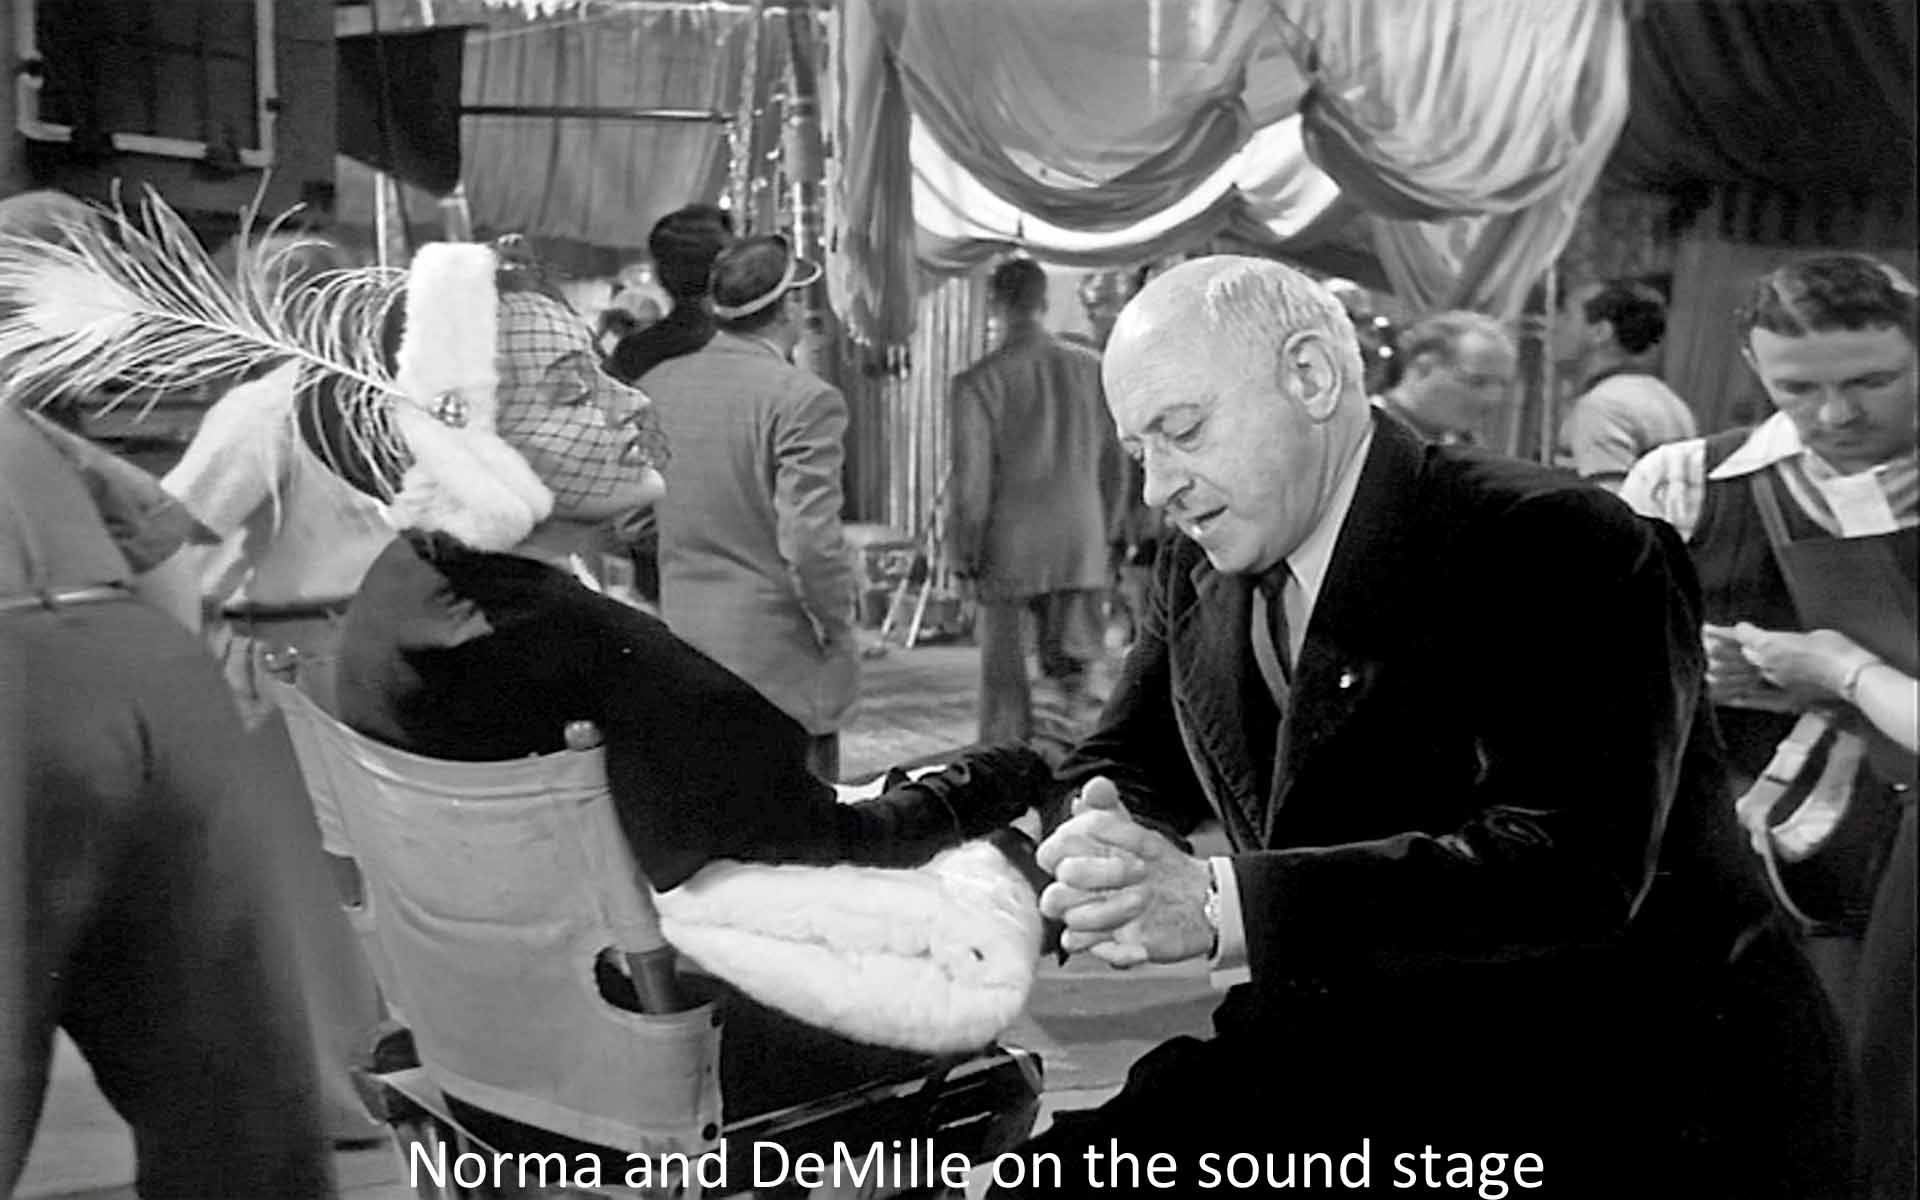 Norma and DeMille on the sound stage